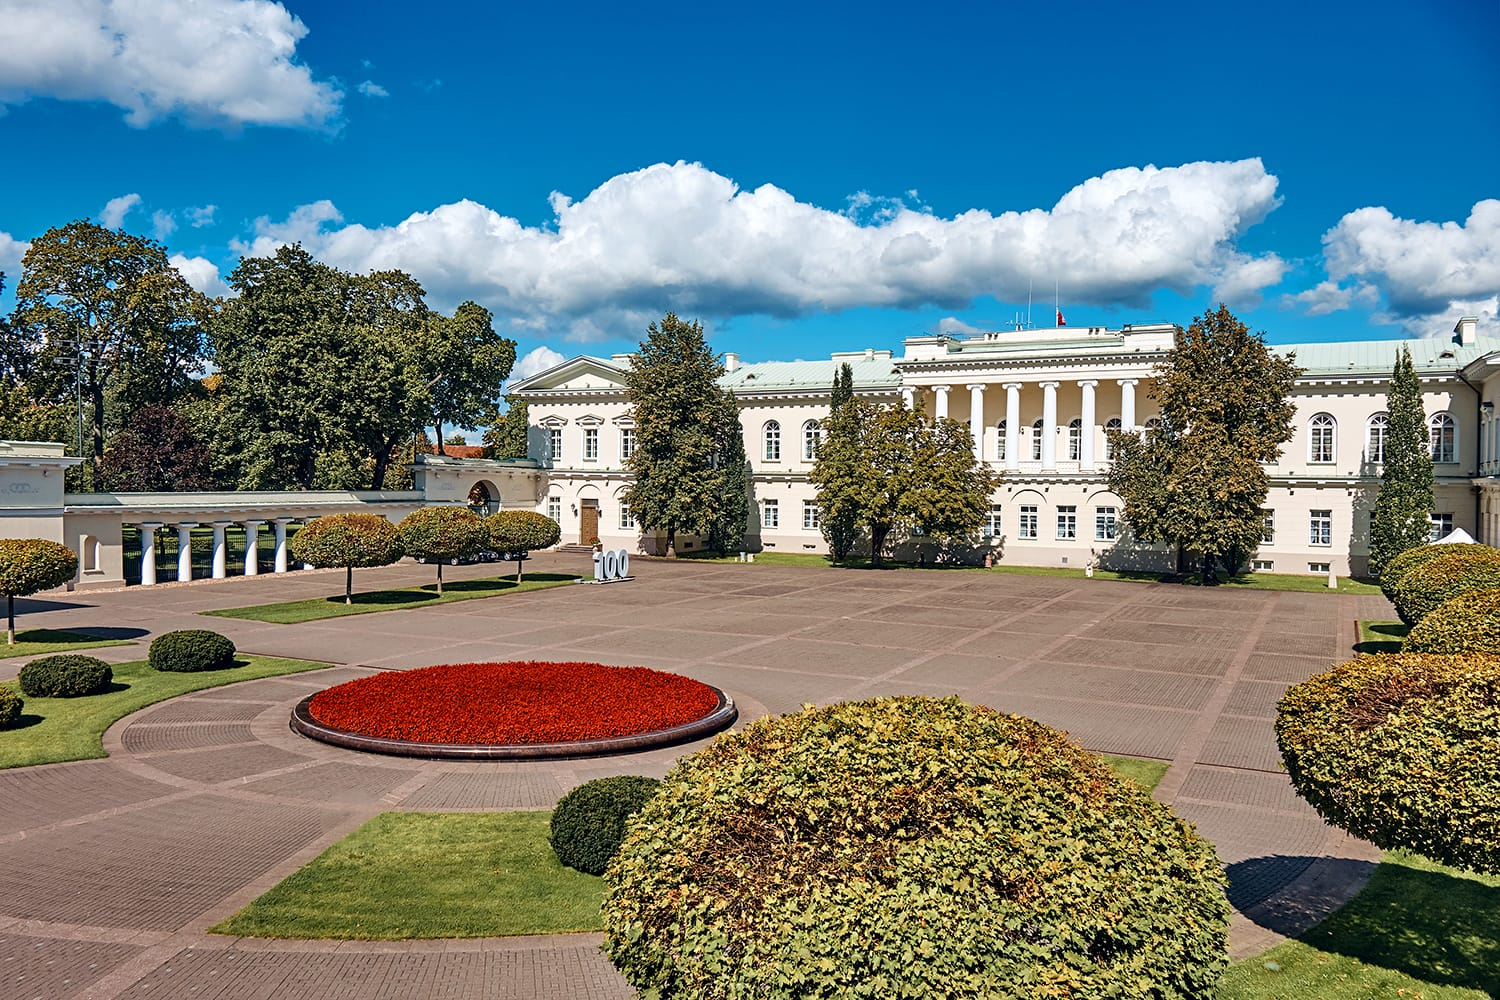 The Exterior of Presidential Palace in Vilnius, Lithuania